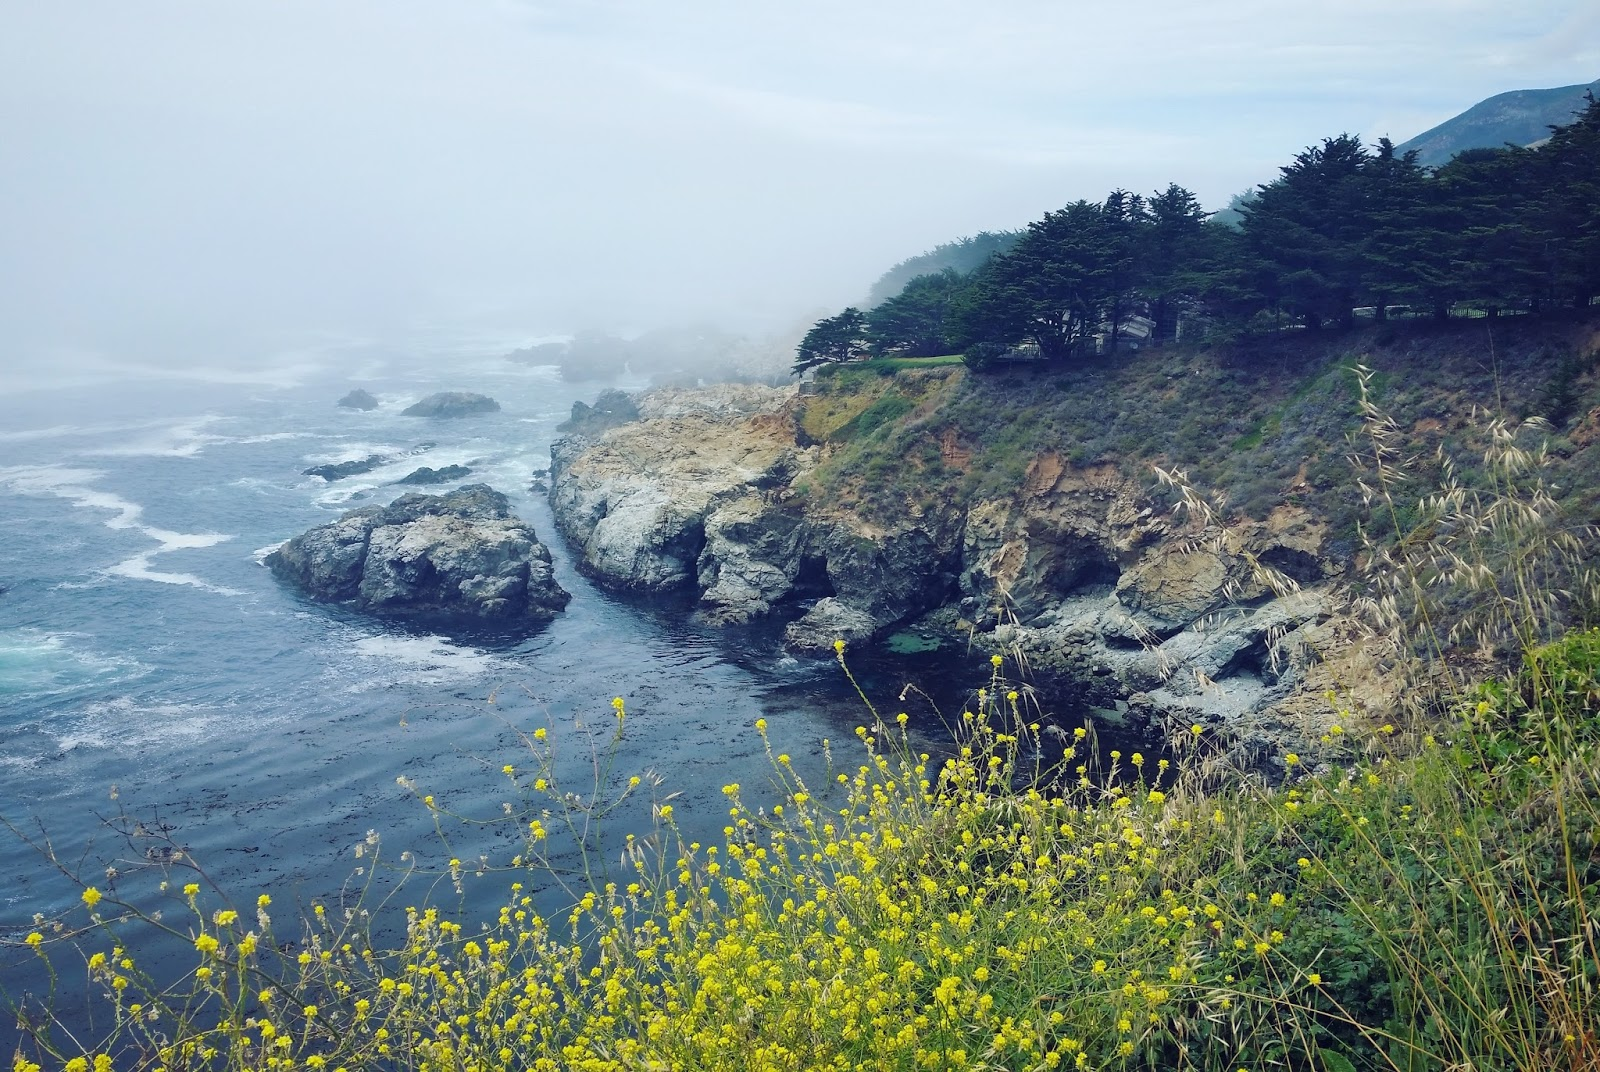 A foggy day off the coast of Big Sur, California, only a few hours south of San Francisco. Big Sur is a perfect weekend trip from the San Francisco Bay Area.